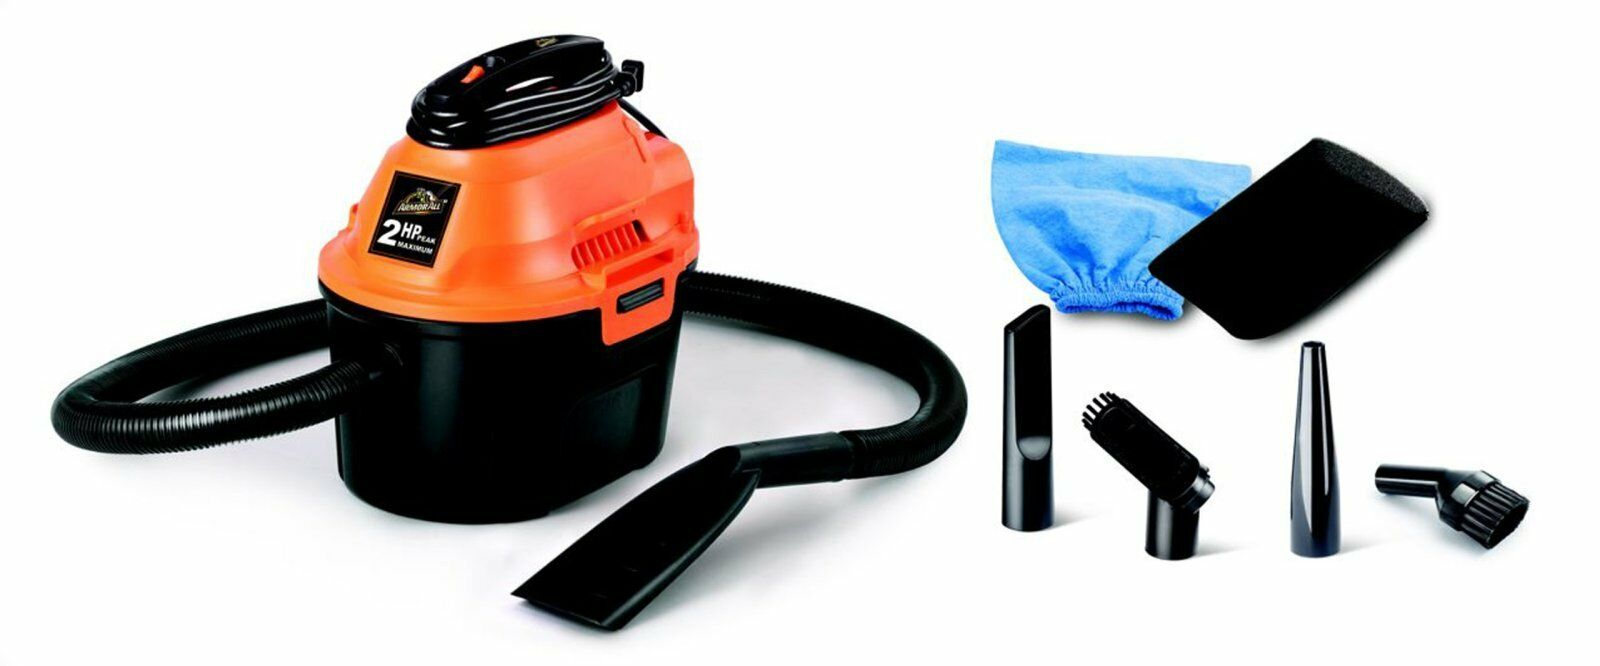 ArmorAll Wet Dry Vac 2.5 Gallon Vacuum Cleaner 2 Peak HP Portable Cleaning Car